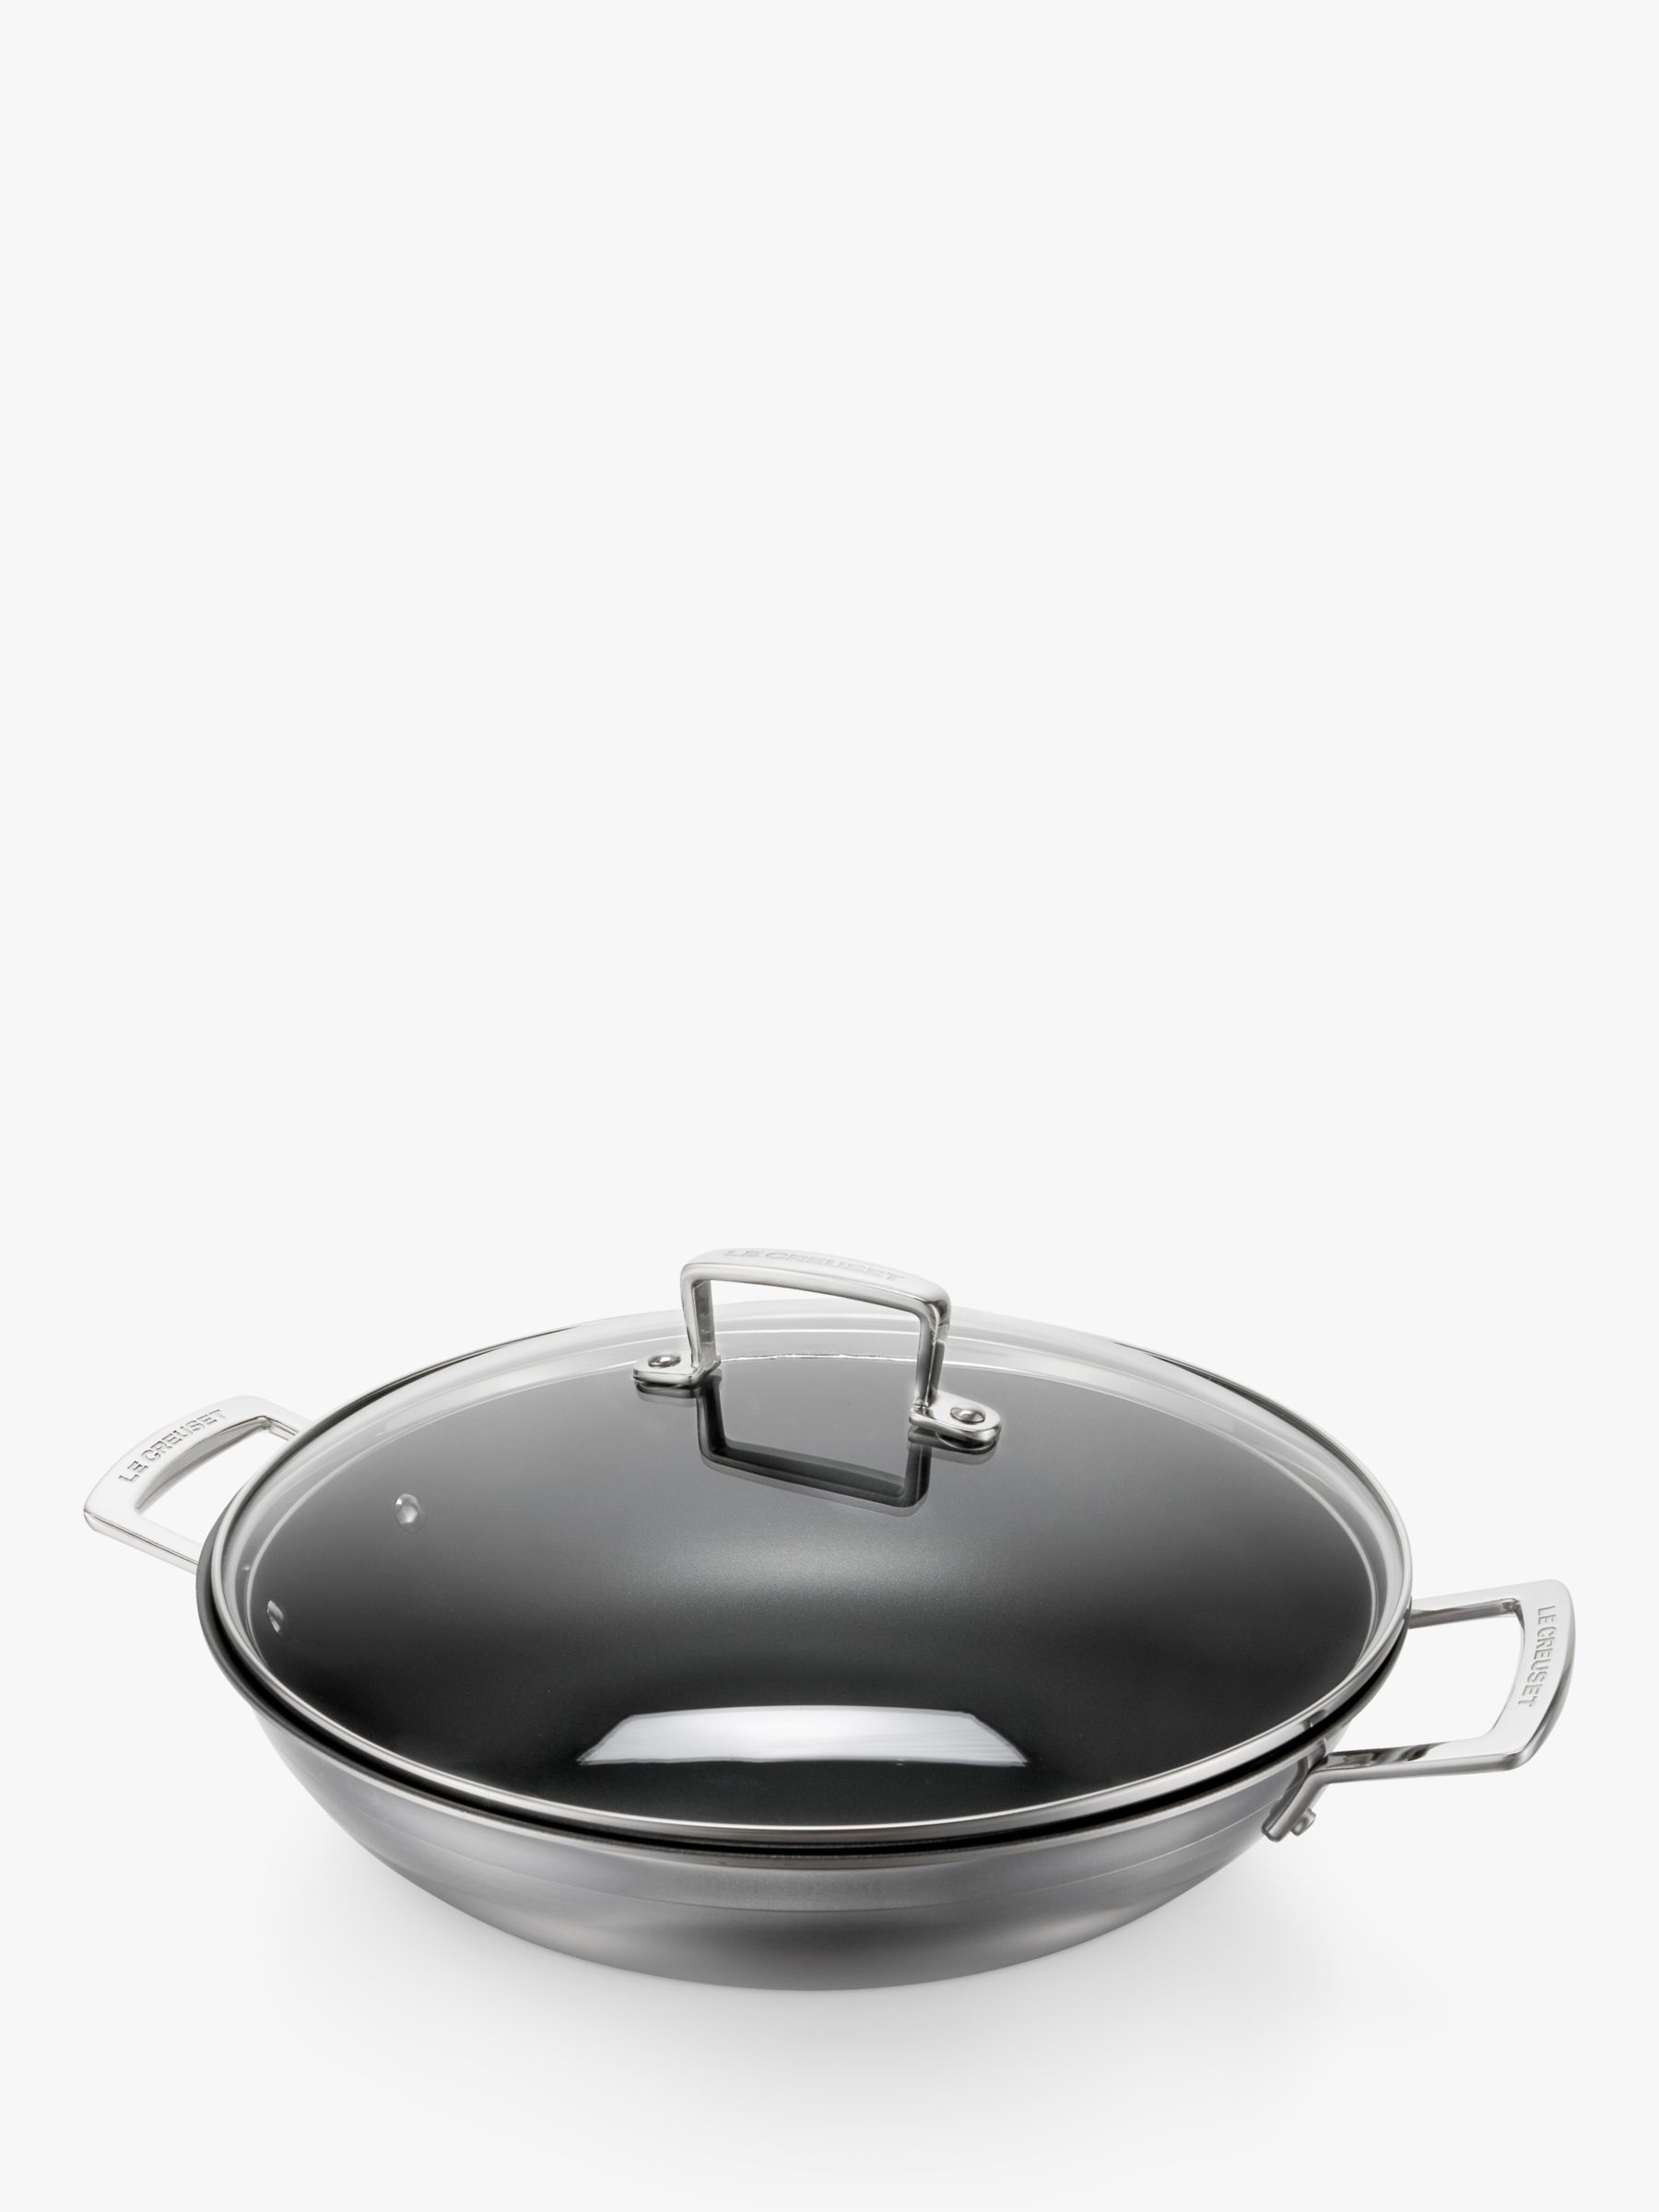 Le Creuset 3-Ply Stainless Steel Non-Stick Wok & Lid, 30cm